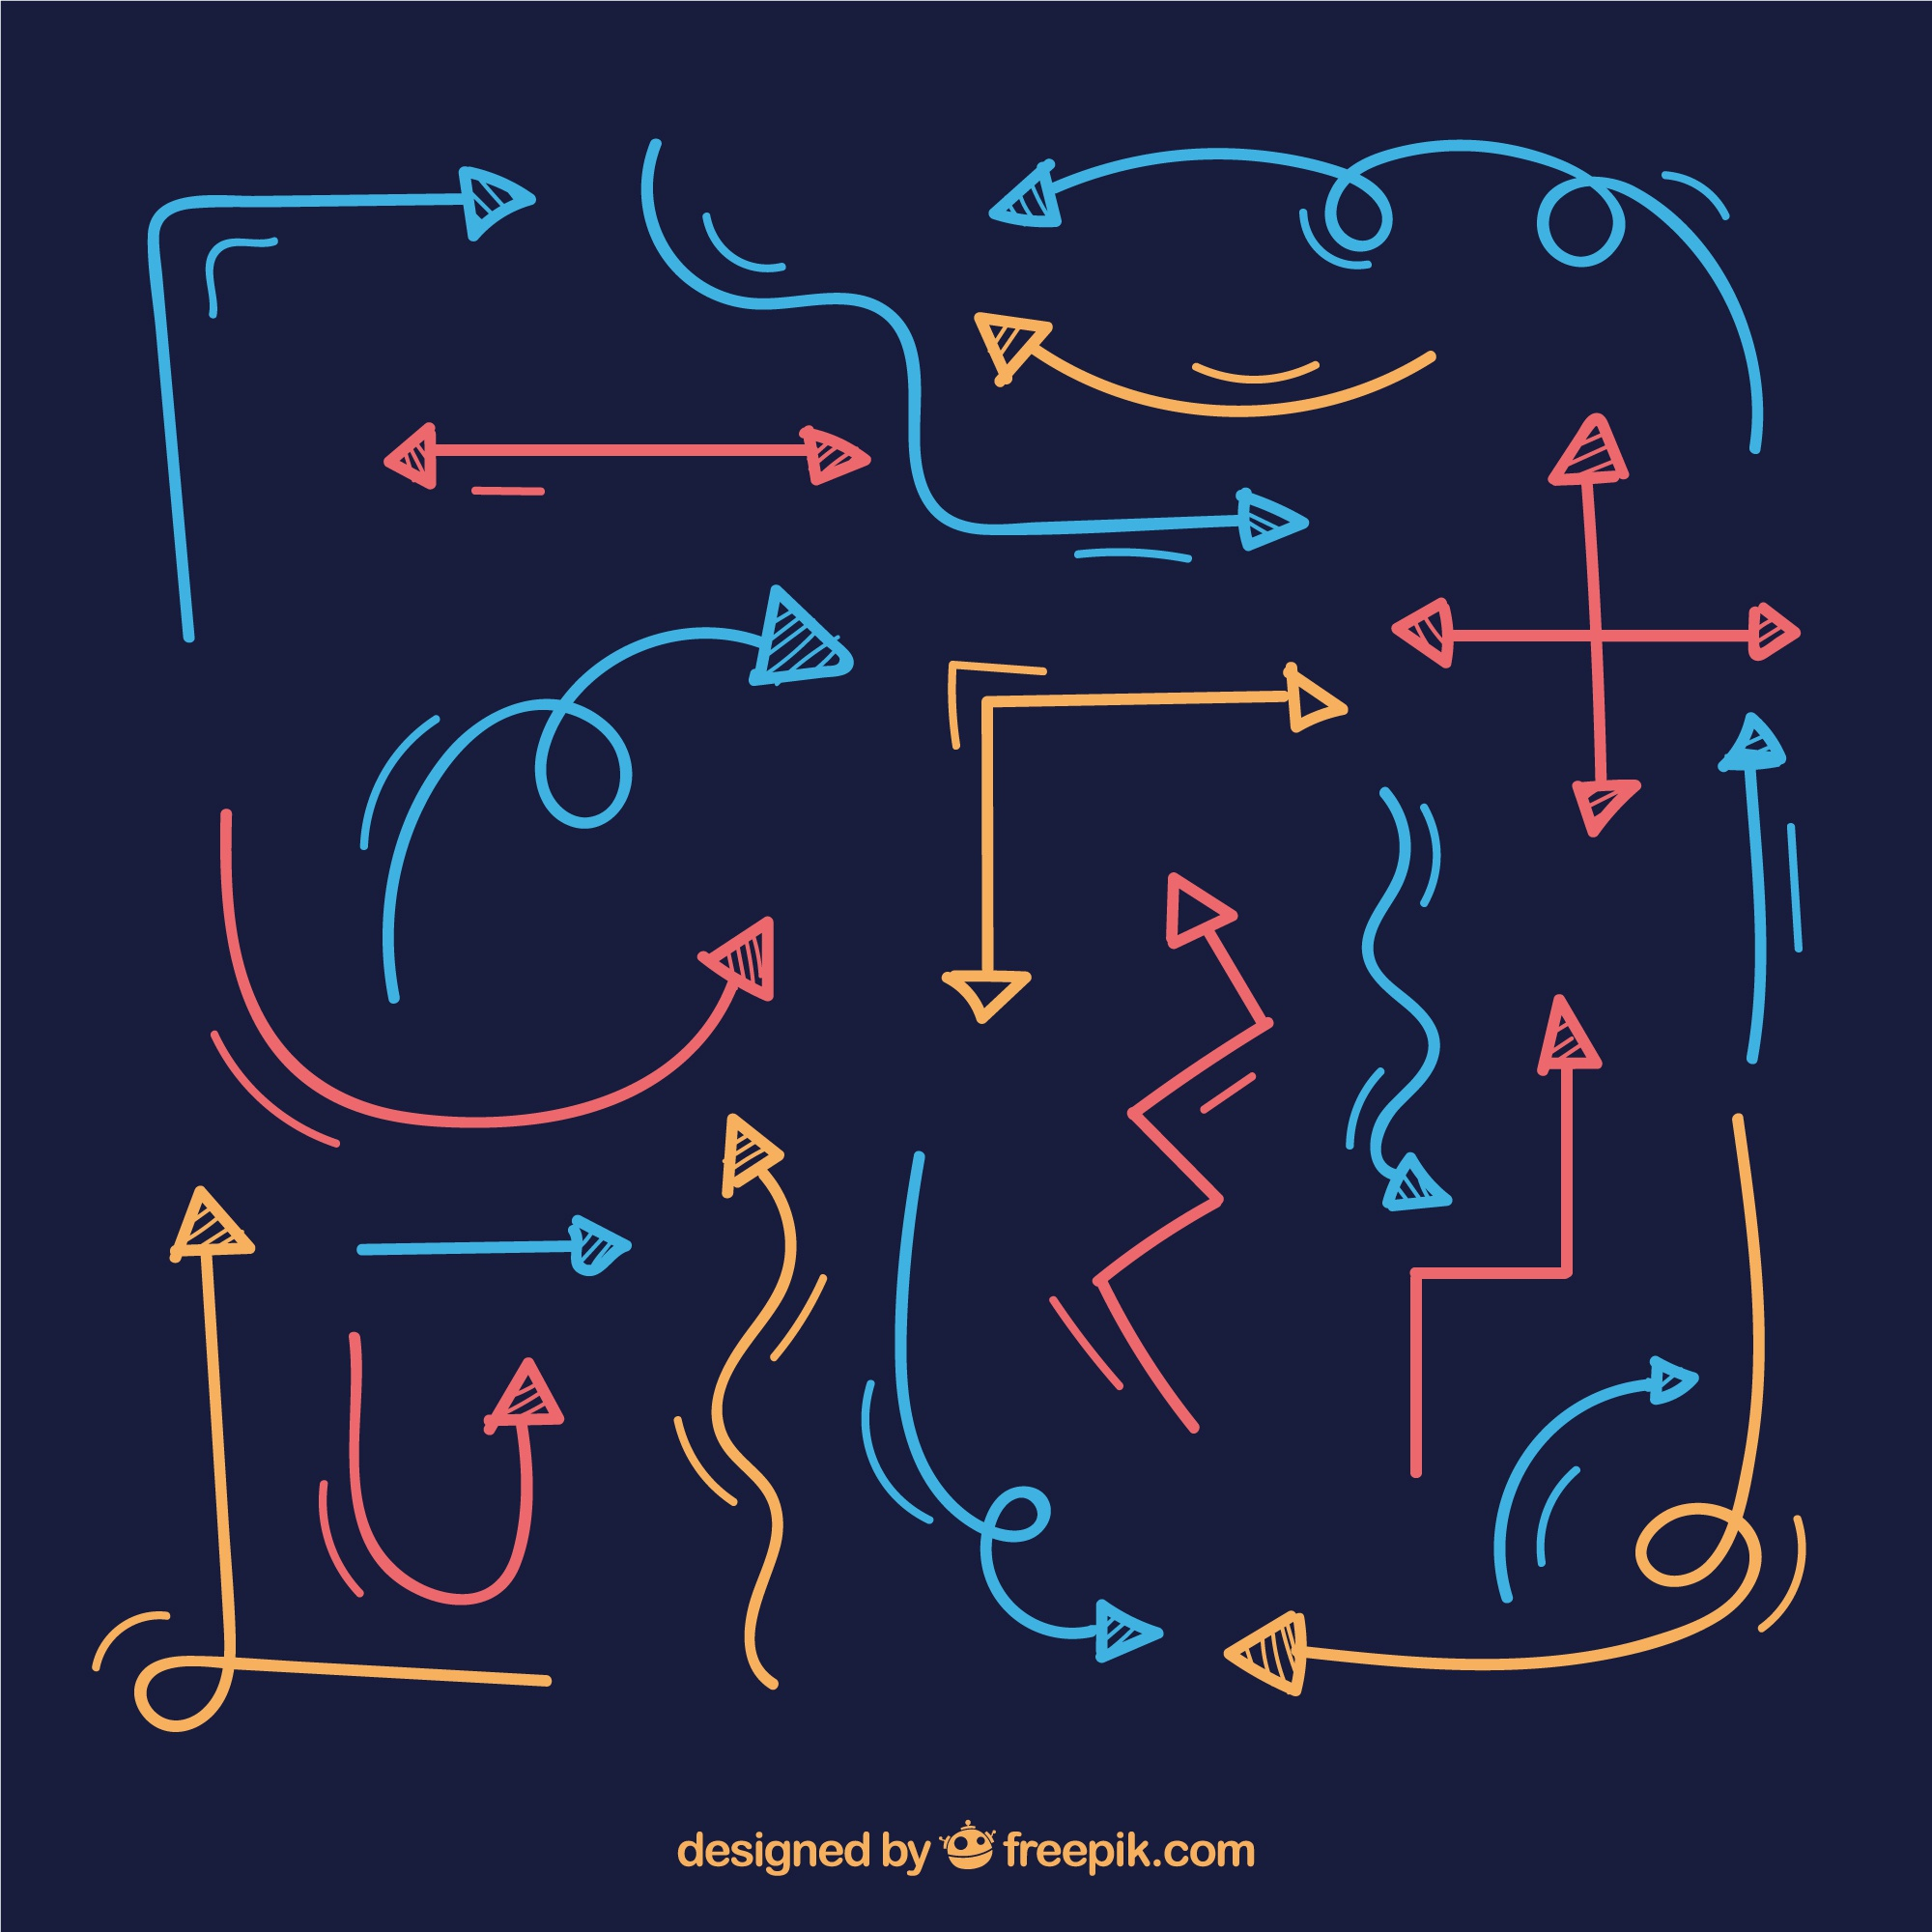 Set of colorful arrows in hand drawn style